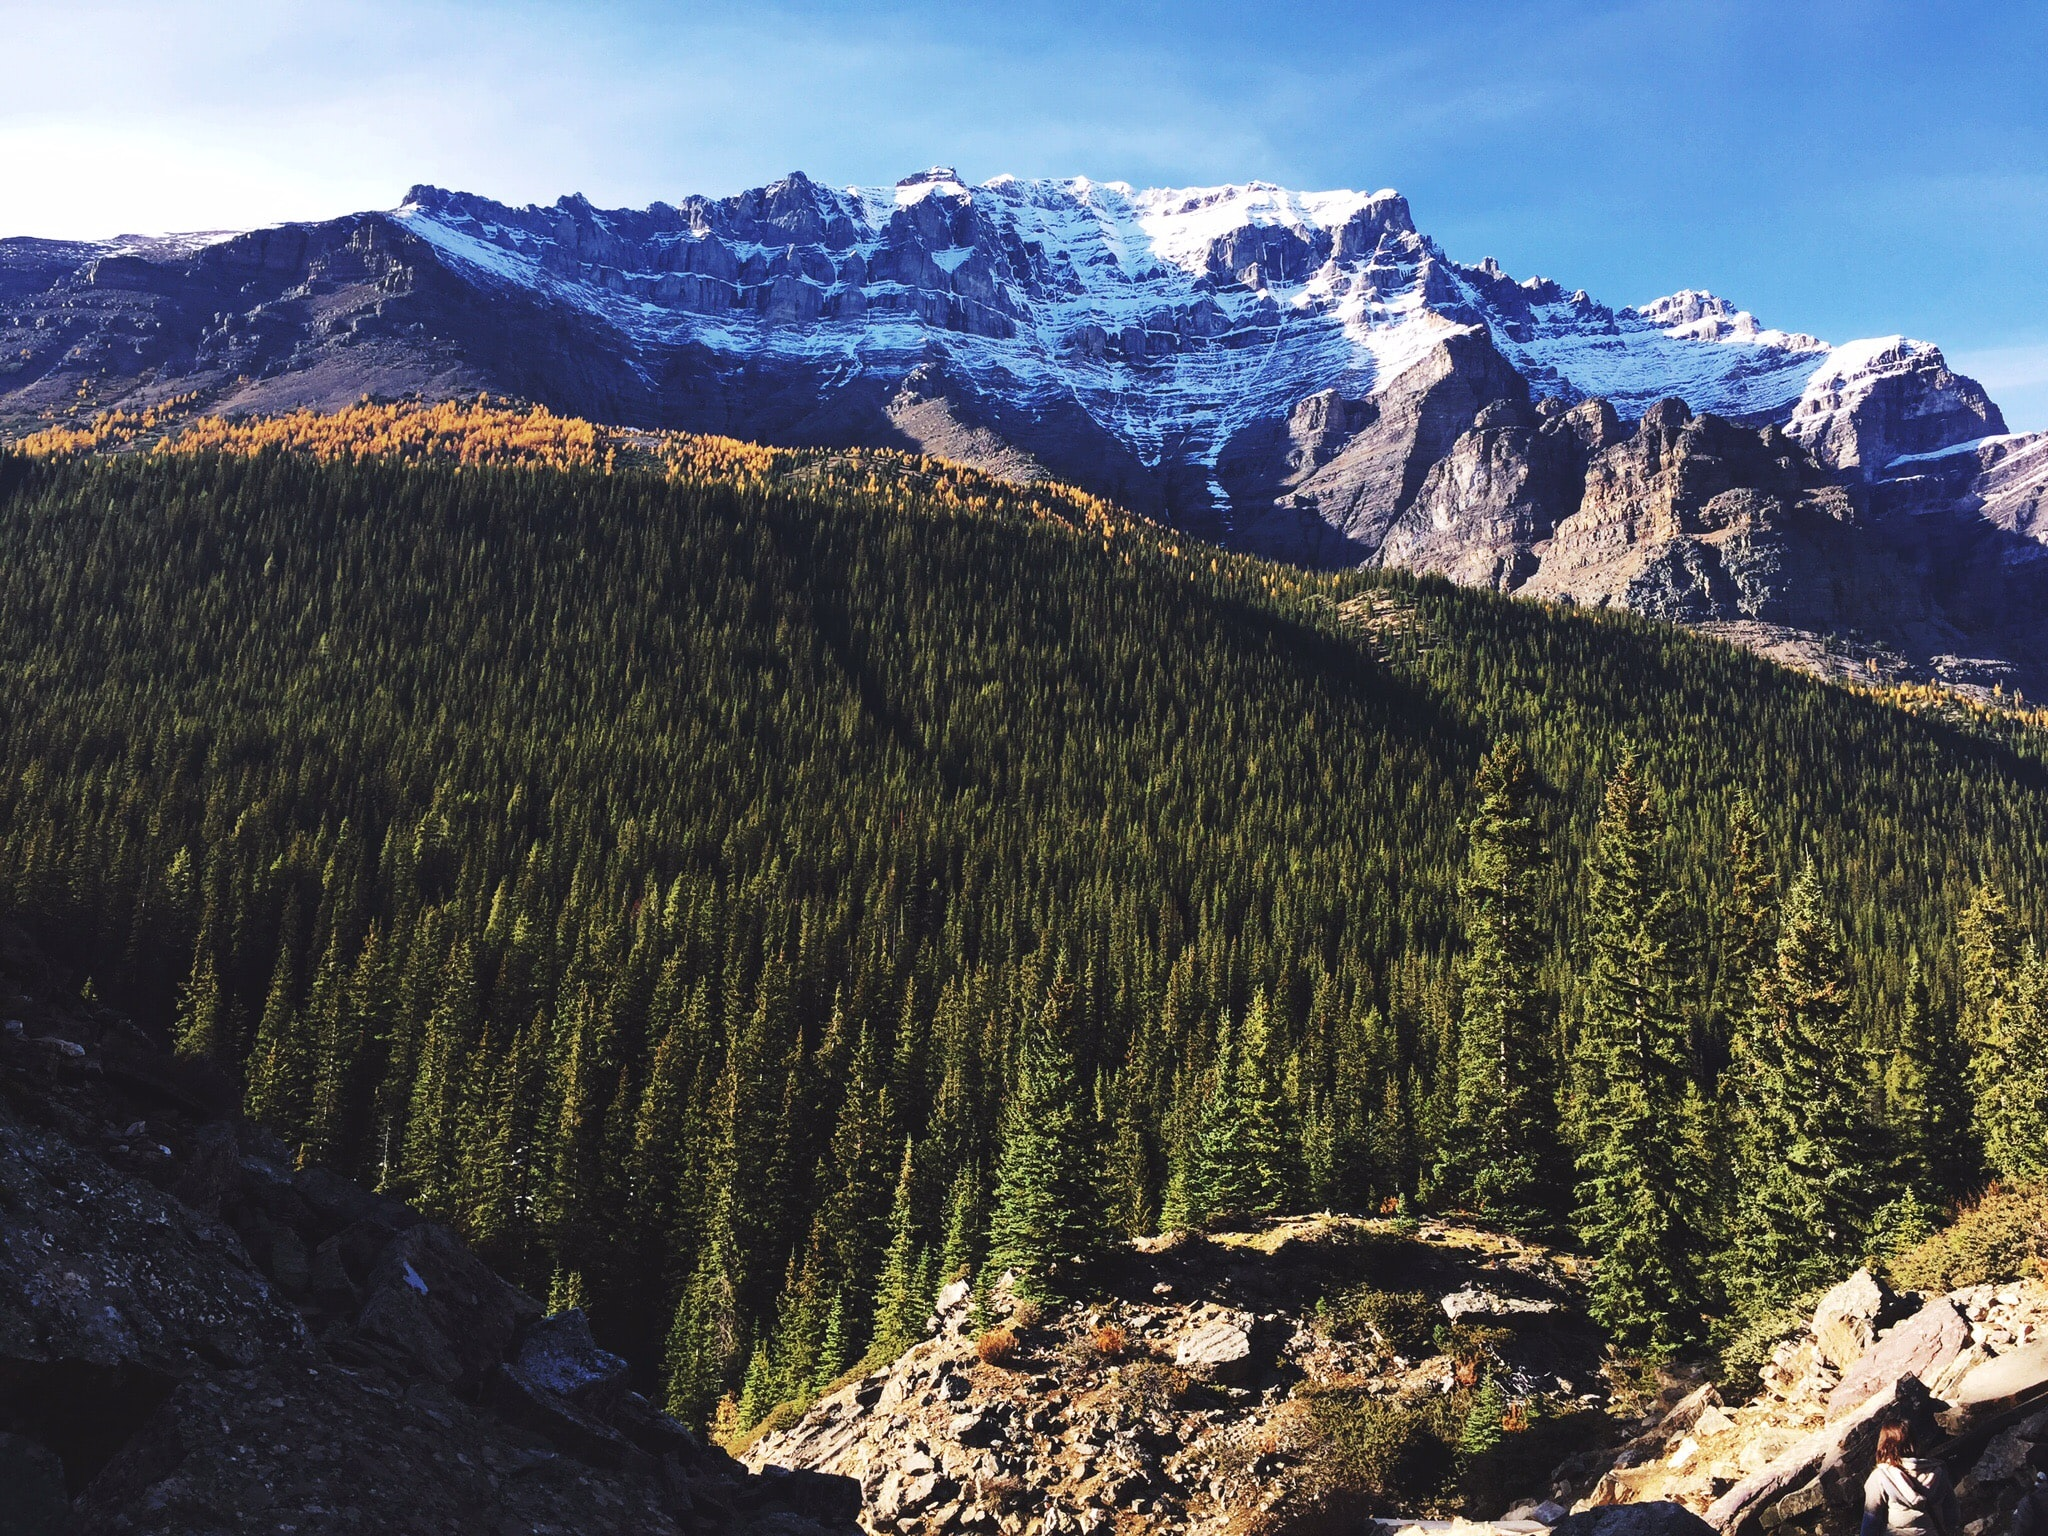 Moraine Lake in Alberta, Canada against a forest of trees and snow capped mountains